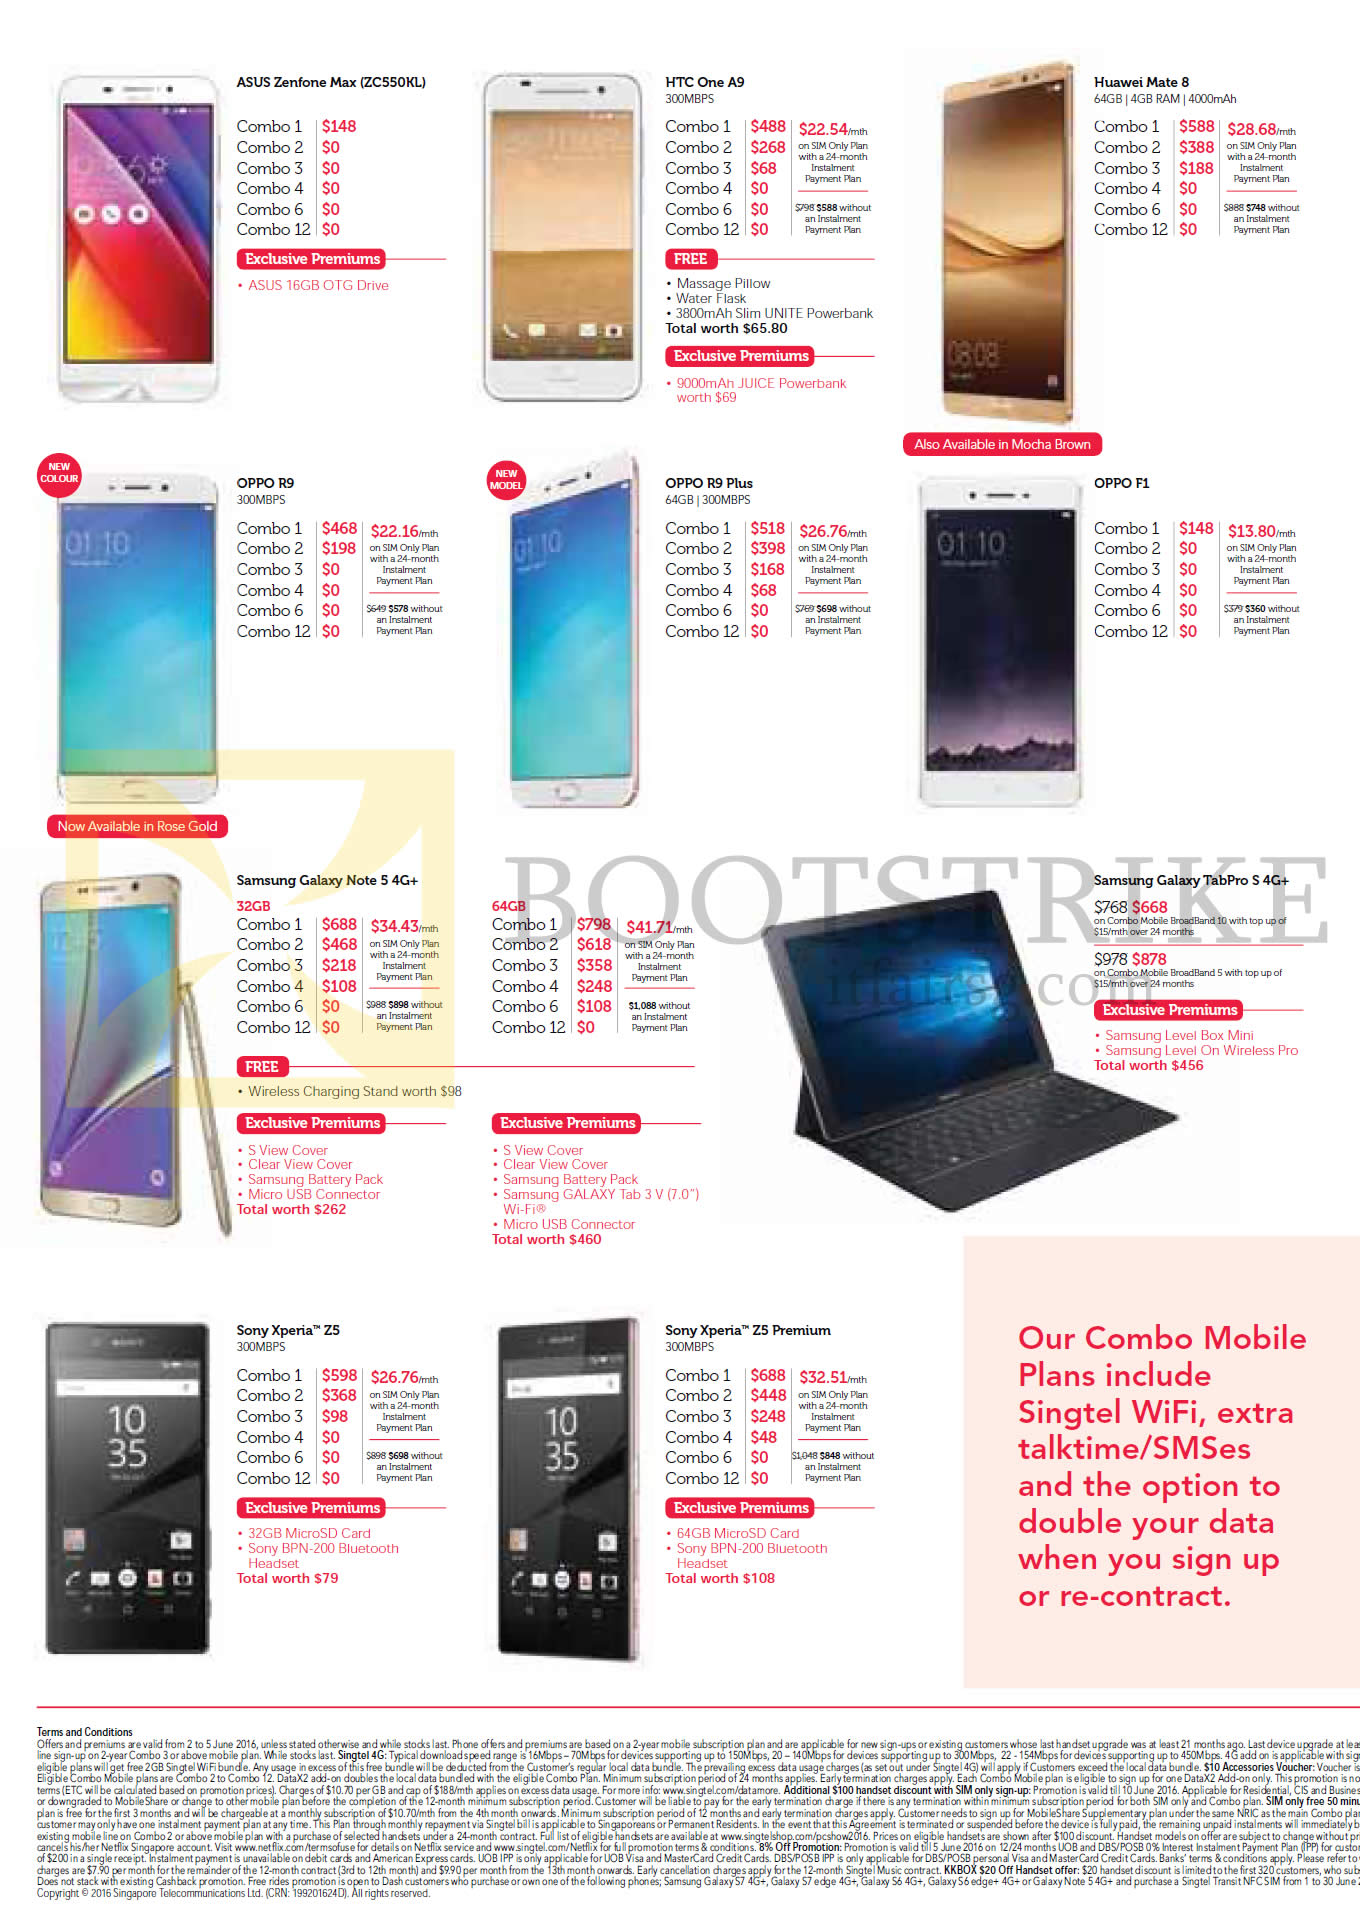 PC SHOW 2016 price list image brochure of Singtel Mobile Phones Asus Zenfone Max ZC550KL, HTC One A9, Huawei Mate 8, Oppo R9, R9 Plus, F1, Samsung Galaxy Note 5, TabPro S, Sony Xperia Z5, Z5 Premium